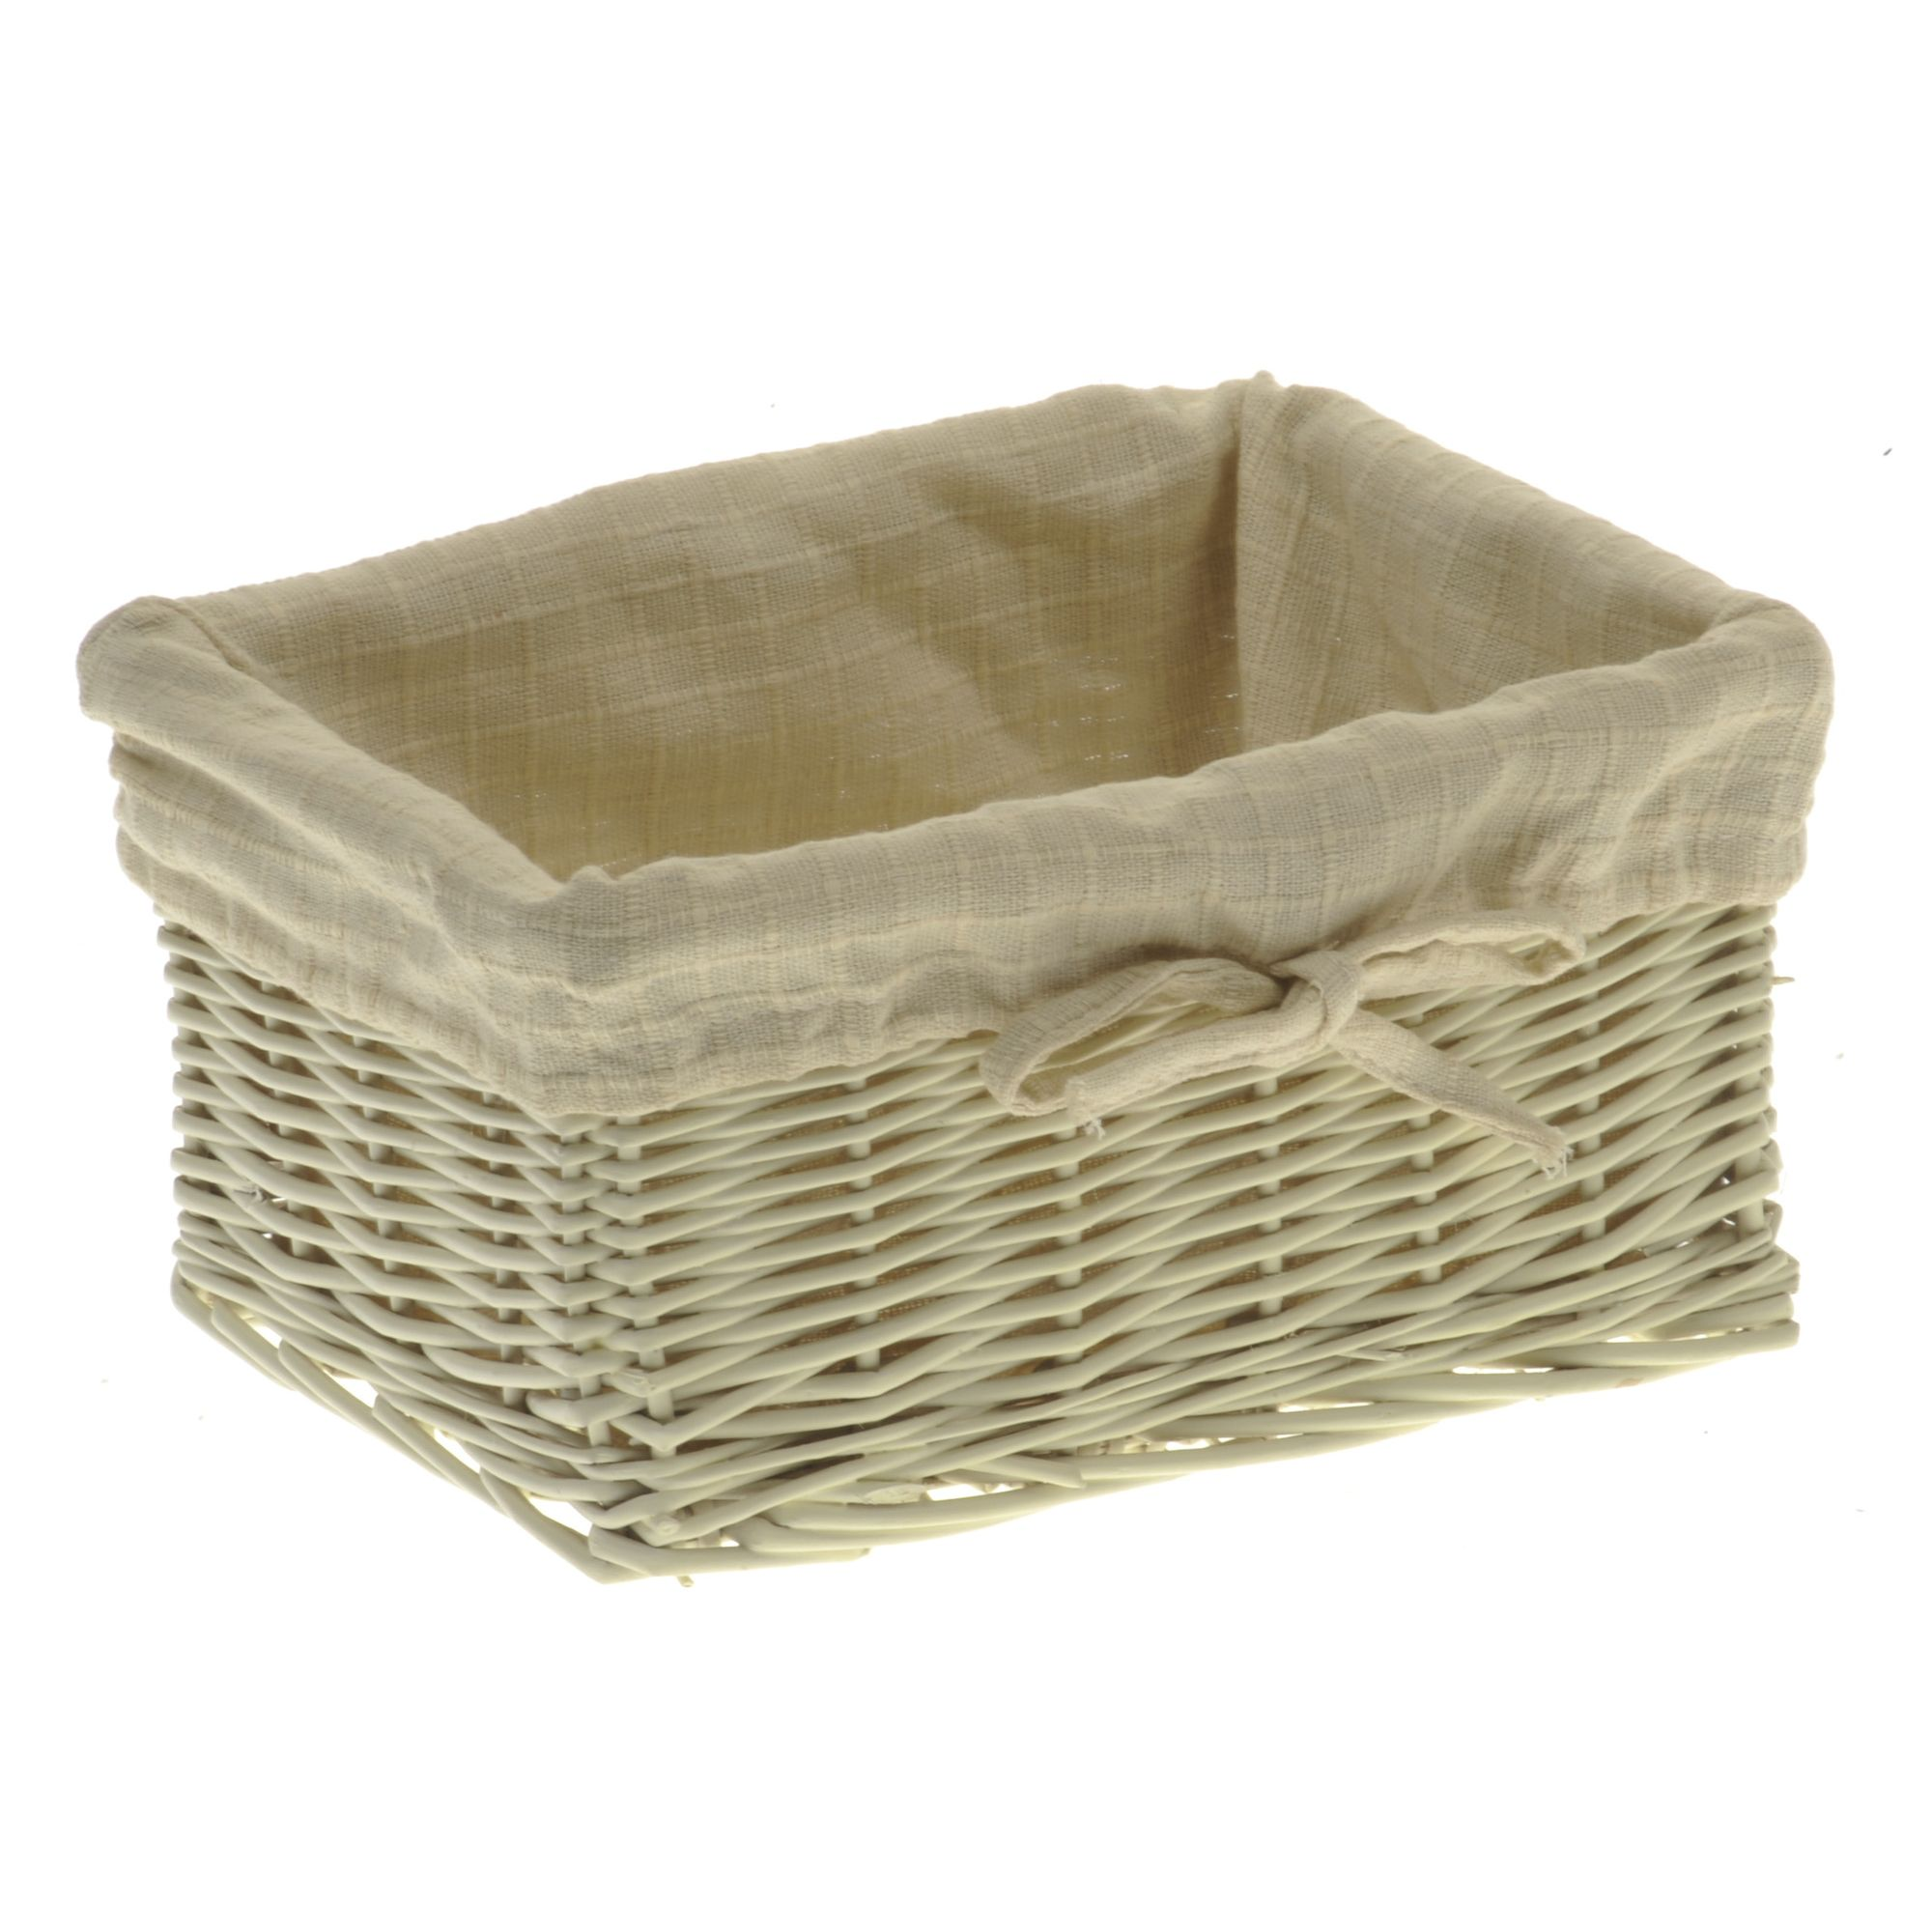 Wicker Valley Storage Basket with Cream Lining - Small